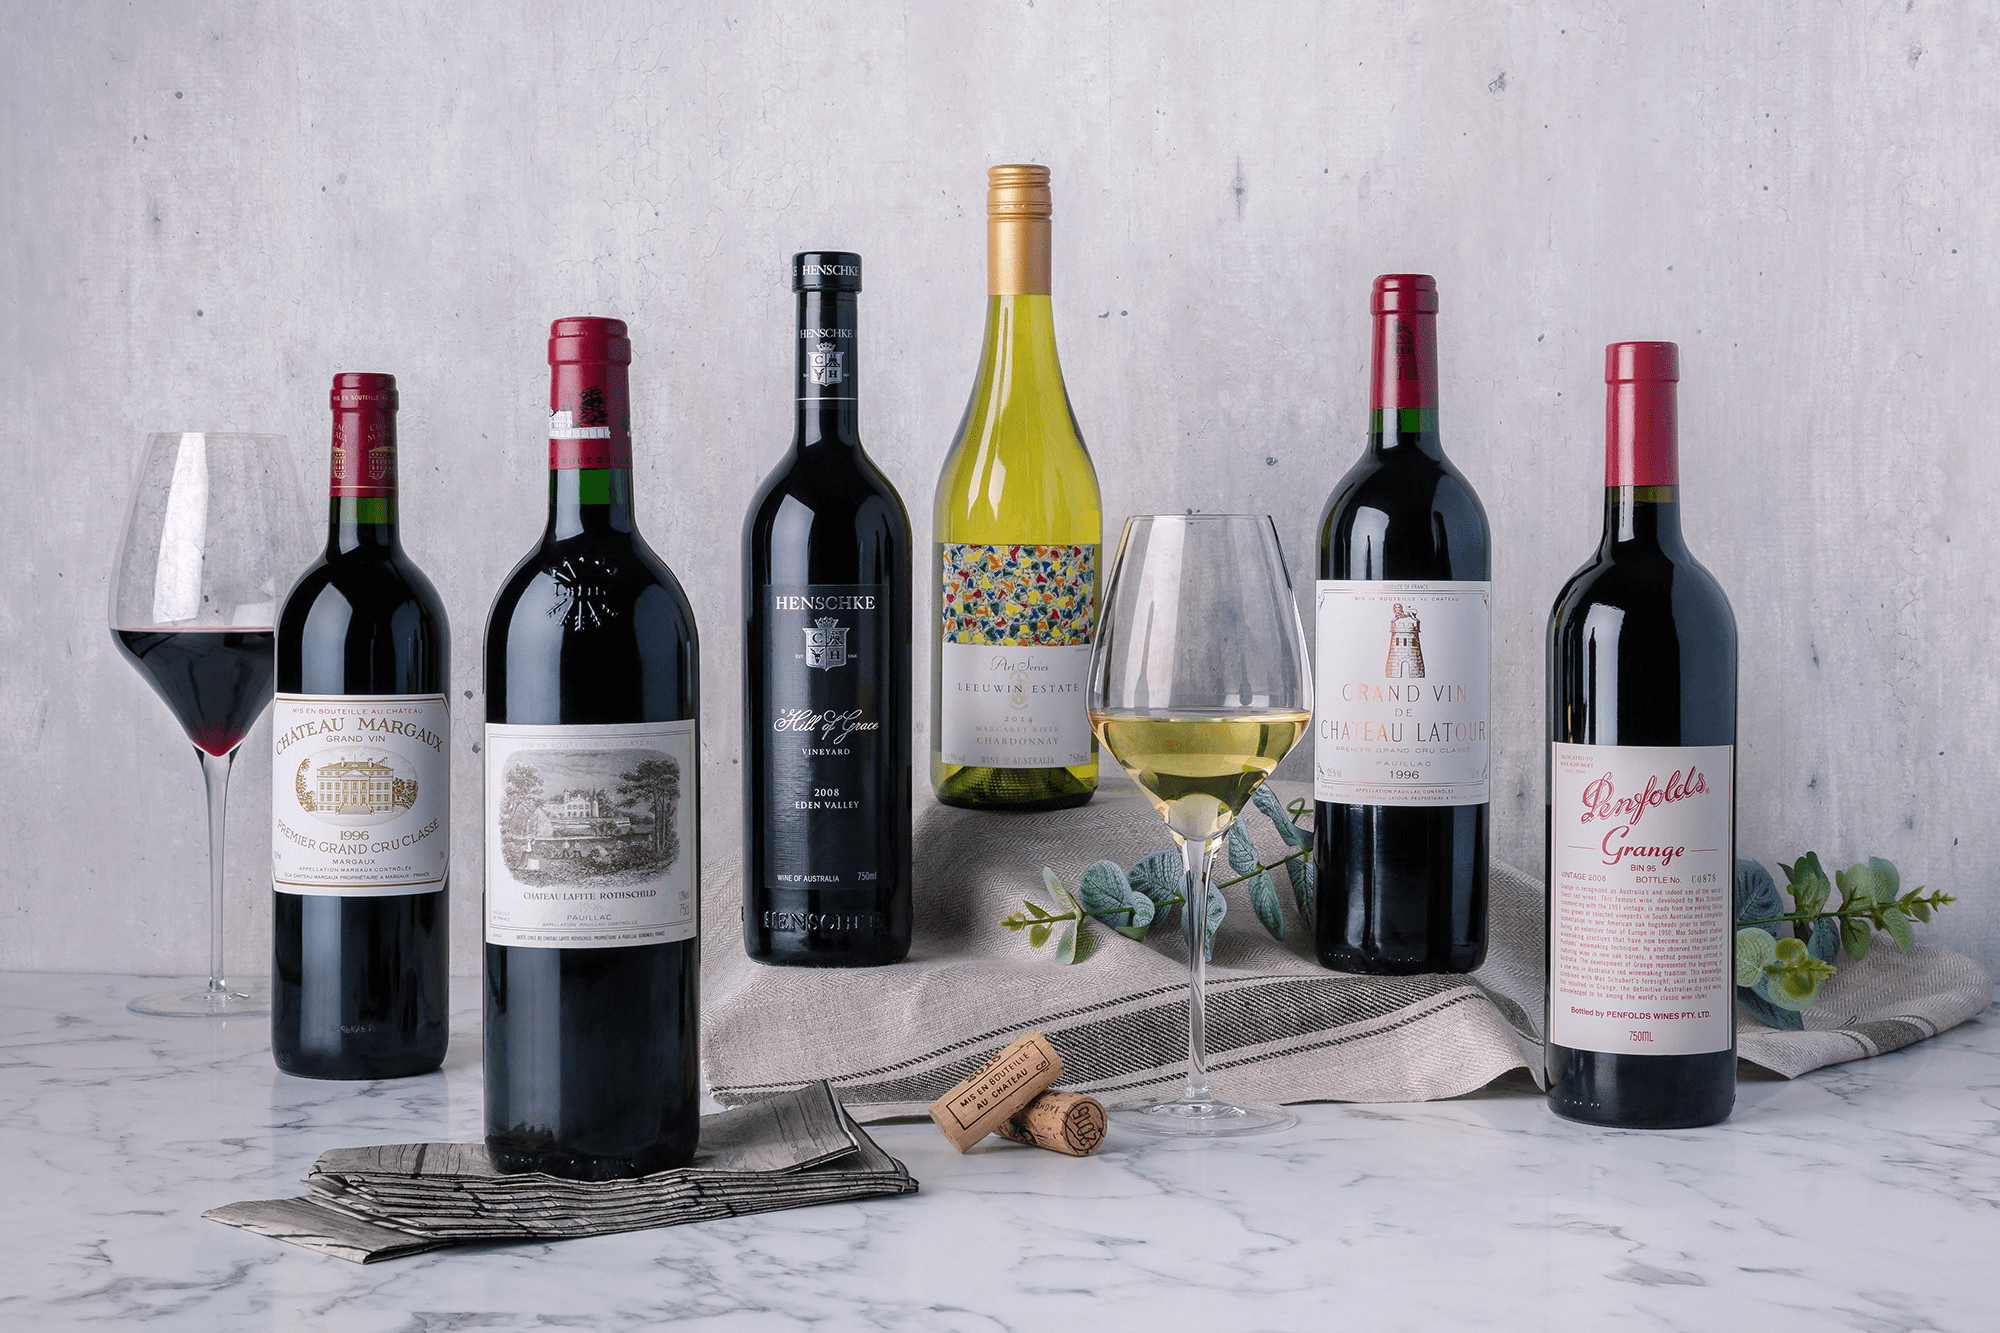 $21 wines at DFS - January 2021 Deals